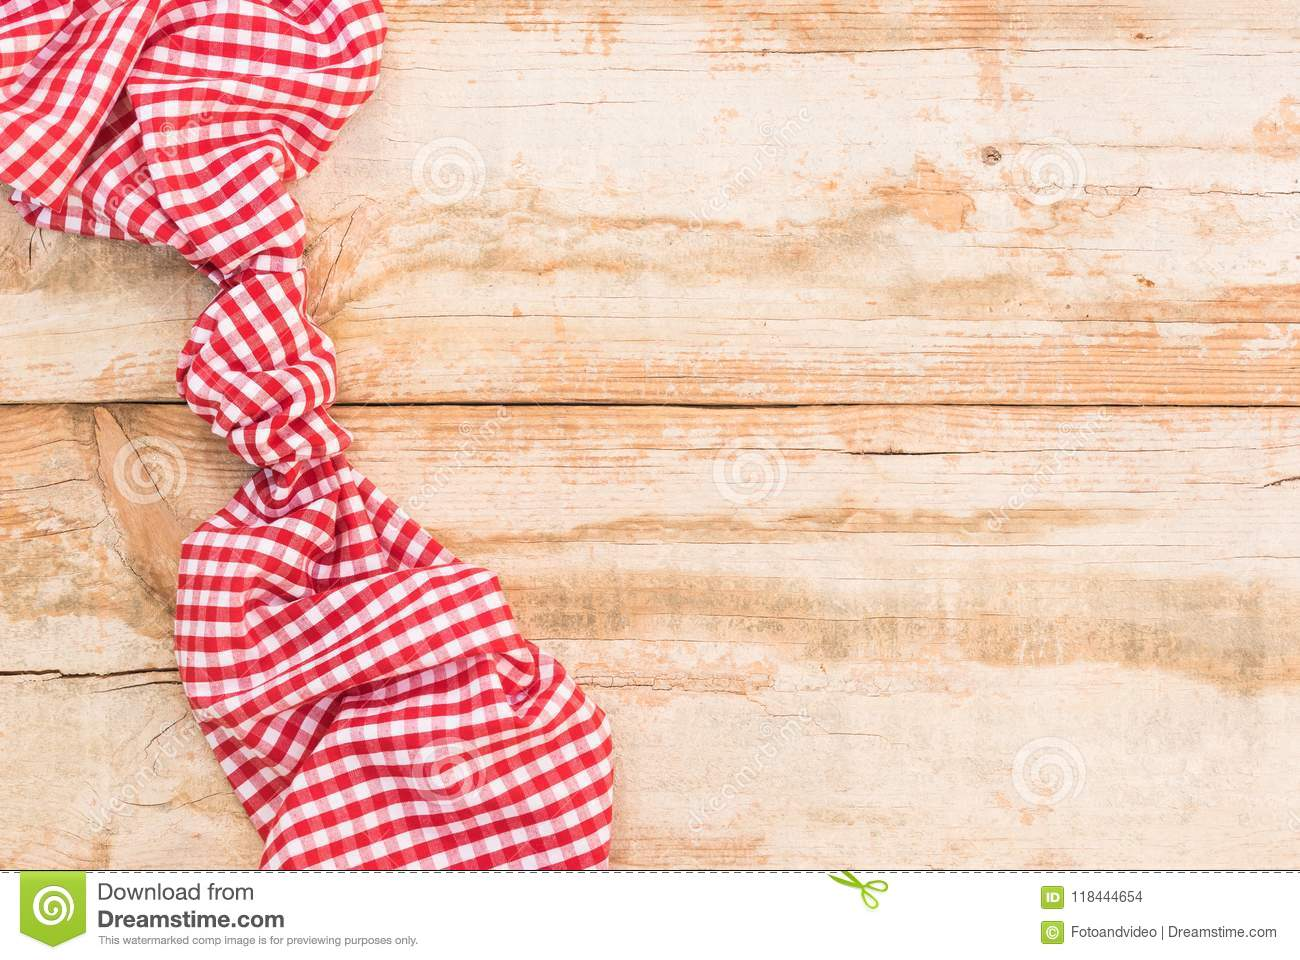 empty rustic wooden picnic table background covered with red checked